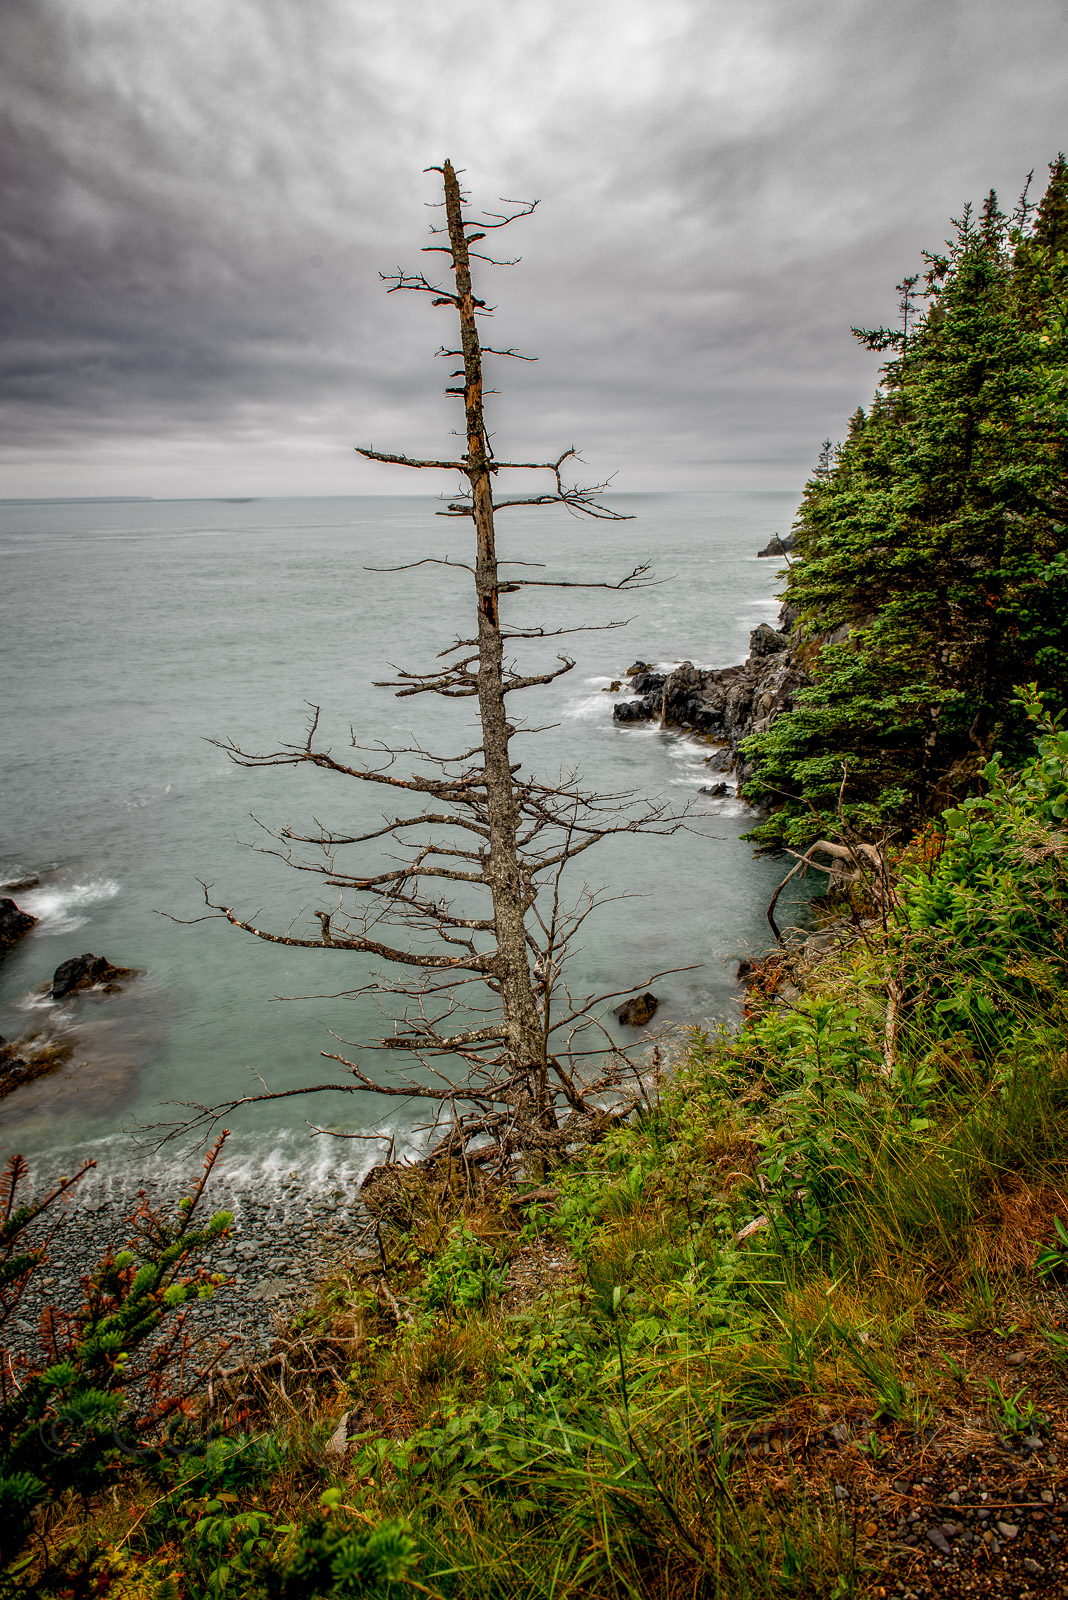 Surviving along the BOLD Coast of Maine is not an easy task as this dead tree demonstrates.